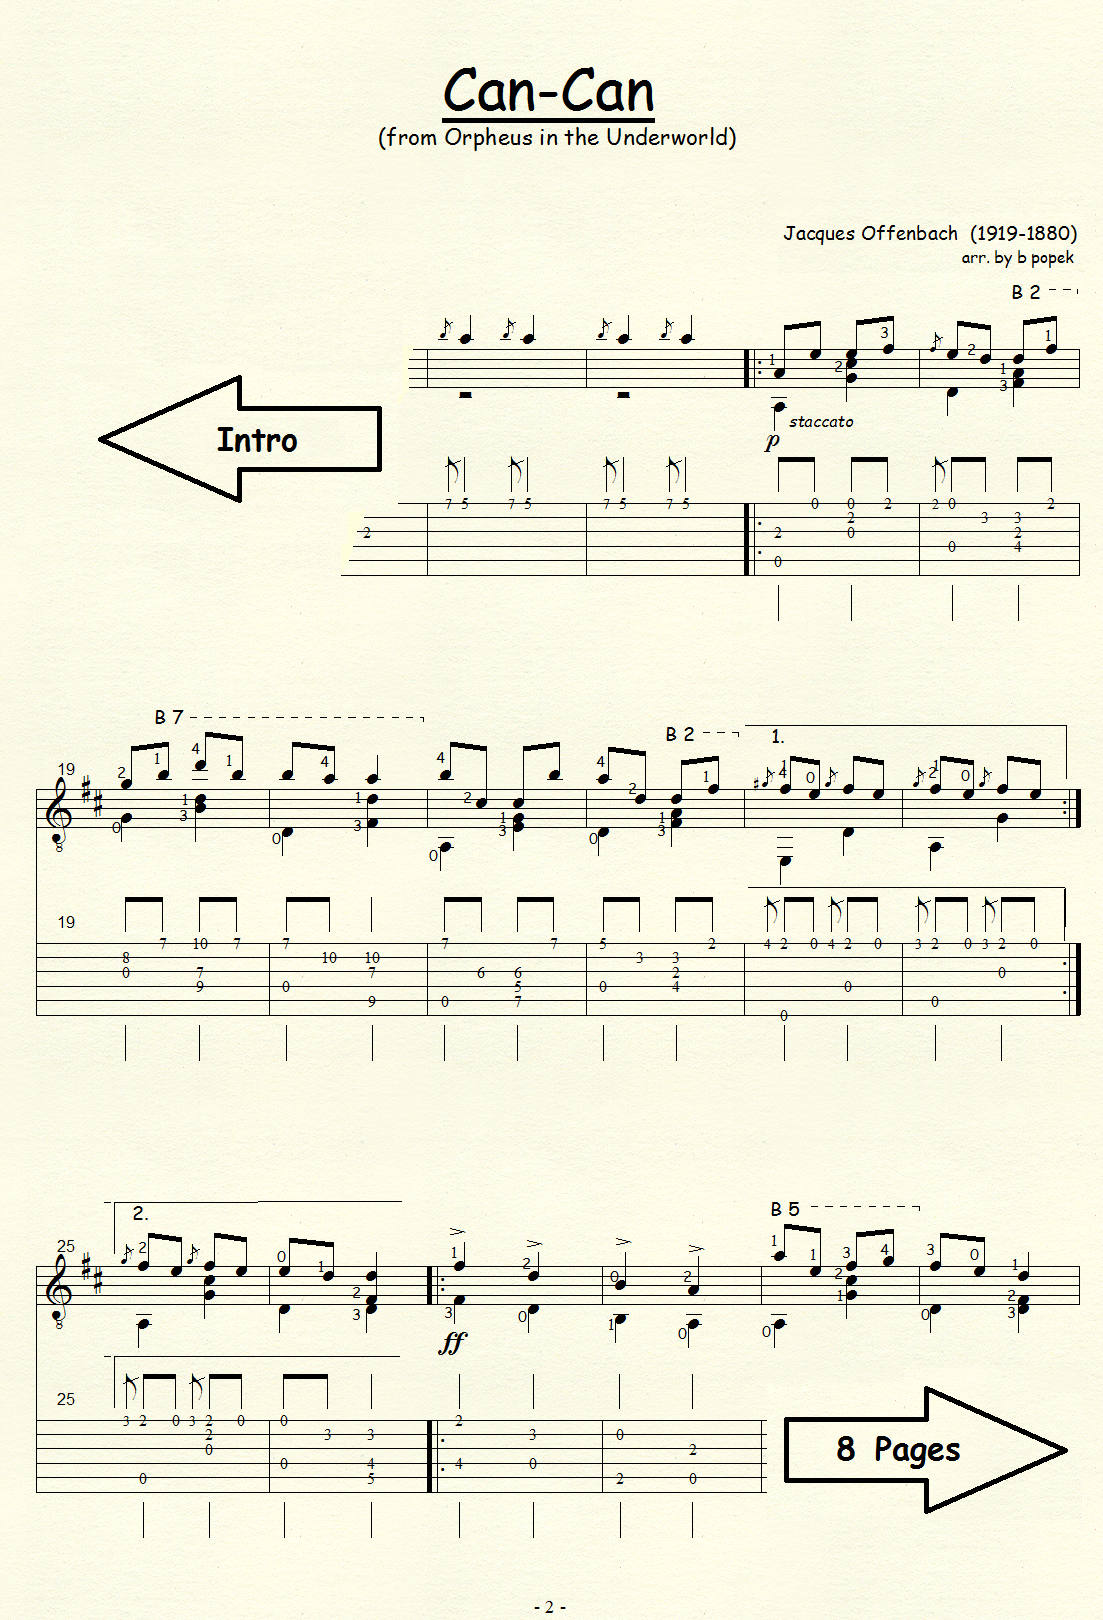 Can-Can (Offenbach) for Classical Guitar in Tablature